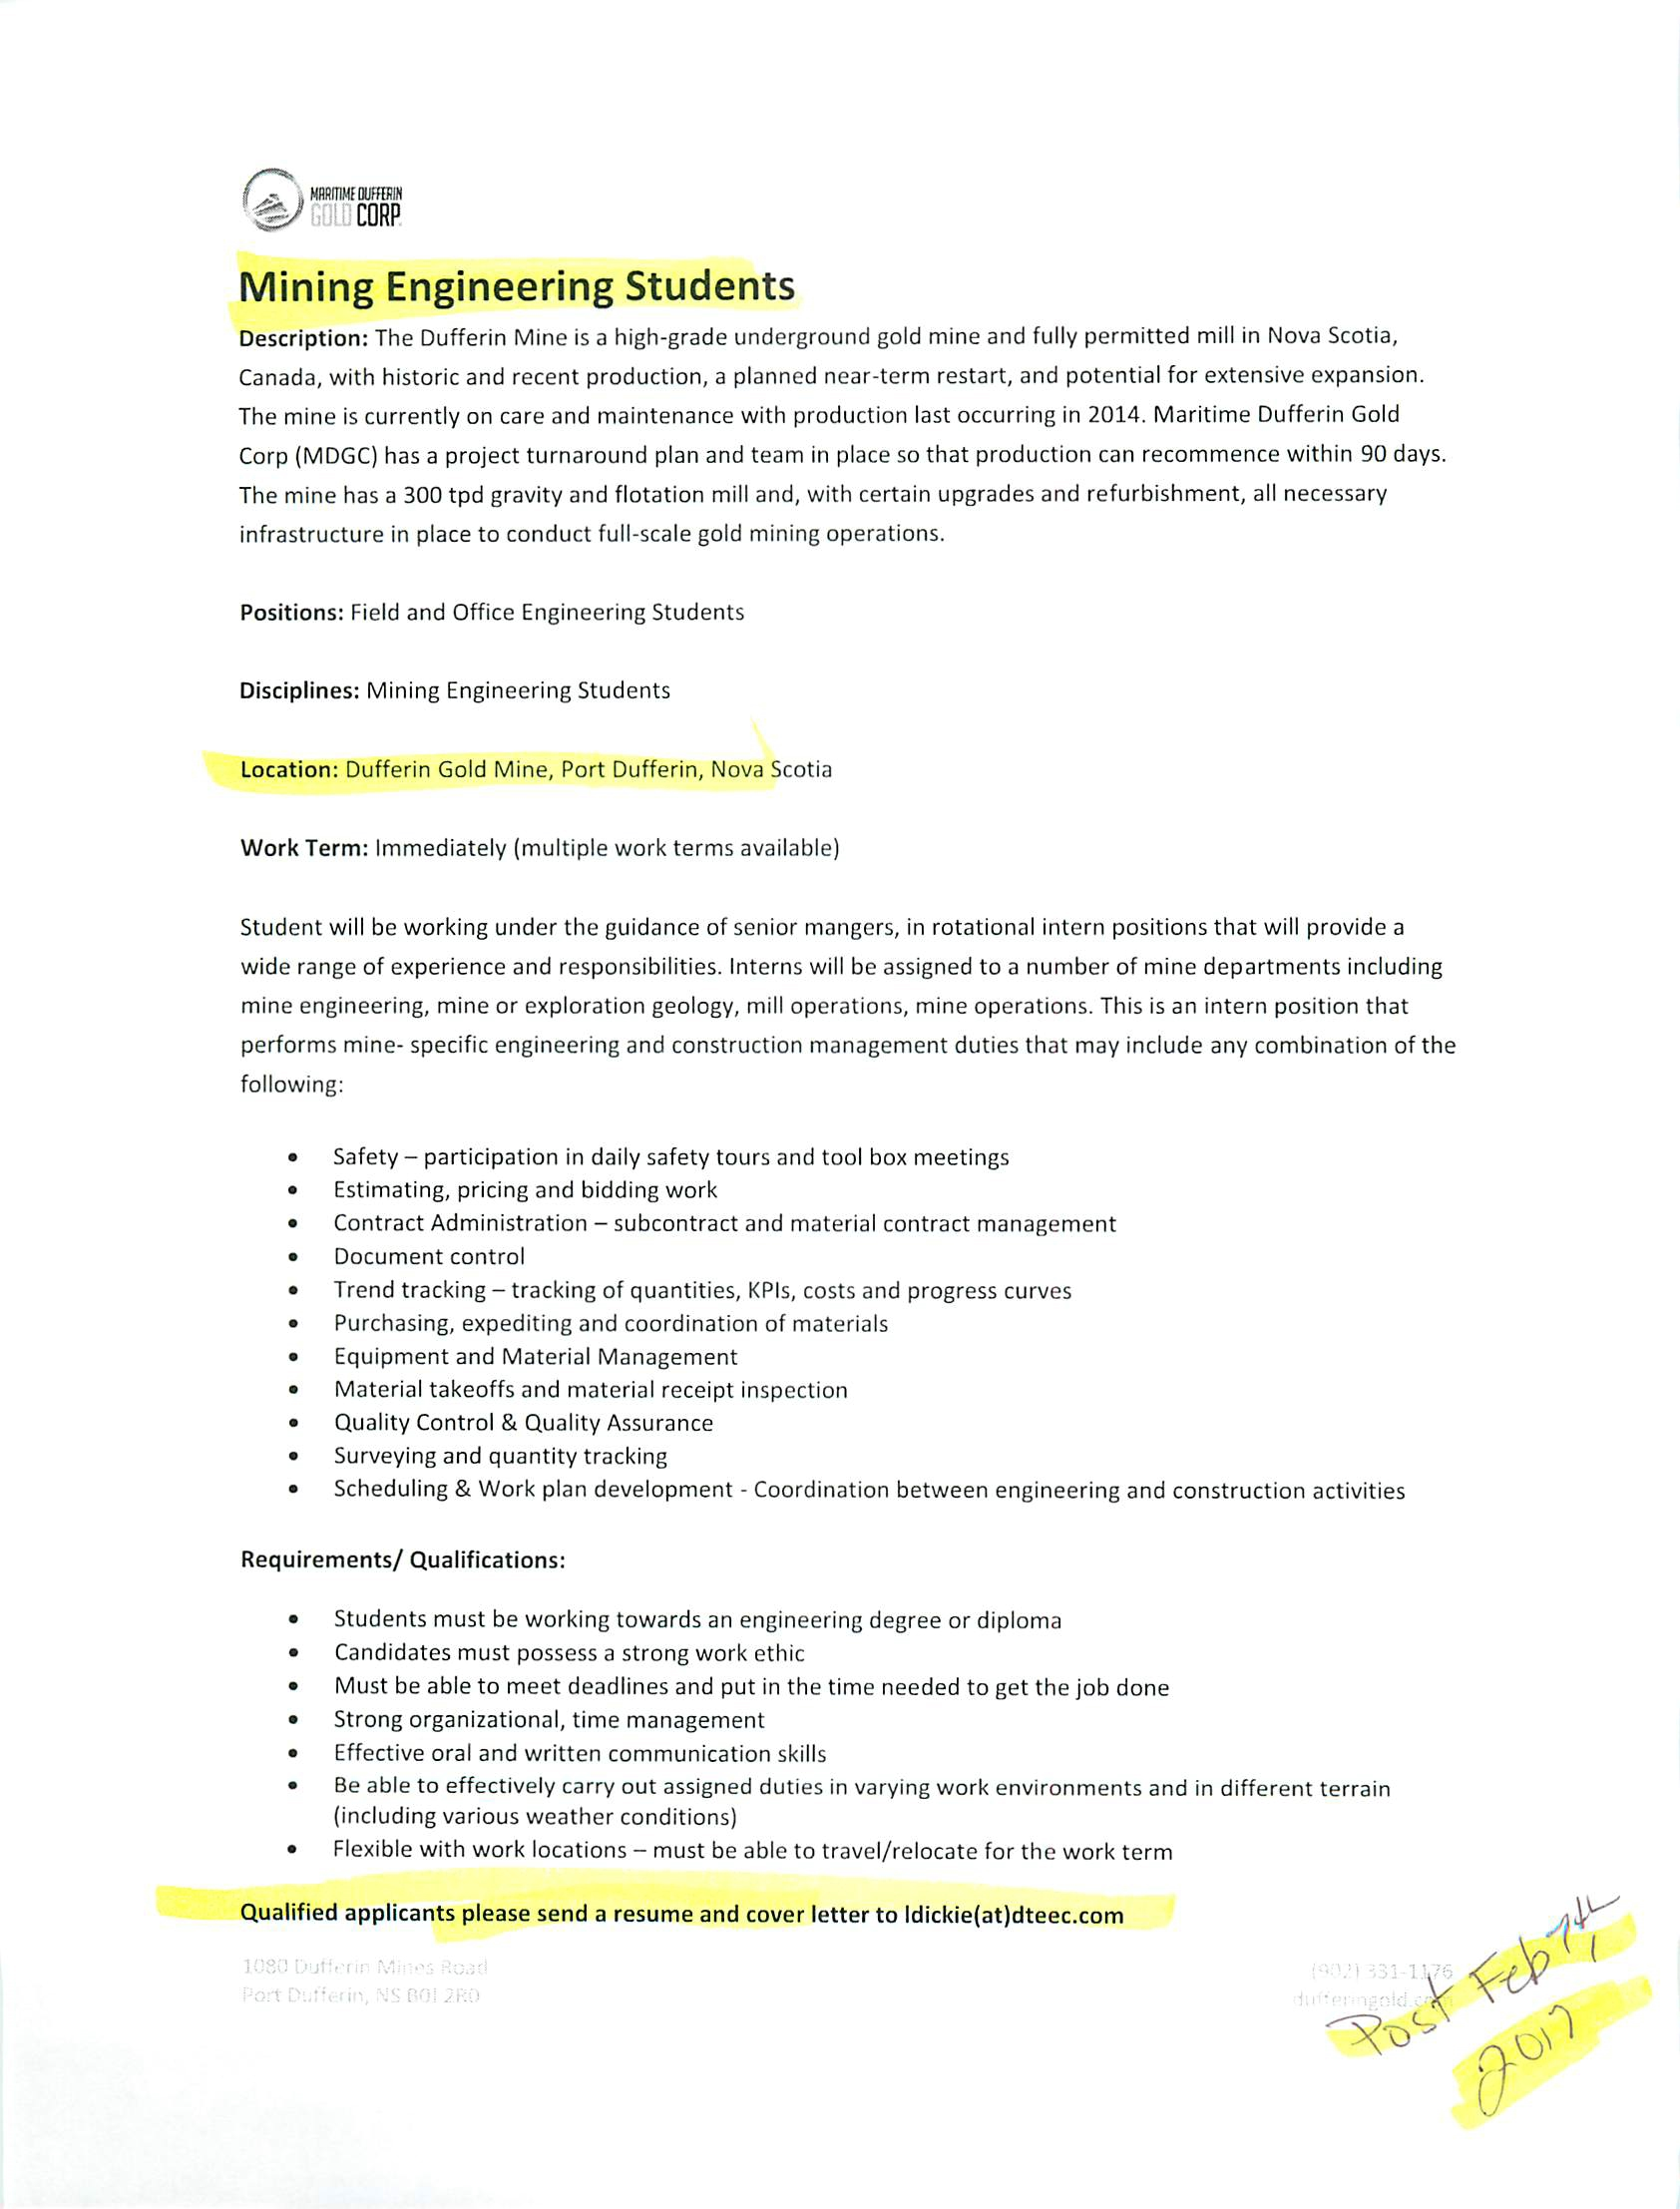 Sample Cover Letter For Film Internship] internship cover letter ...